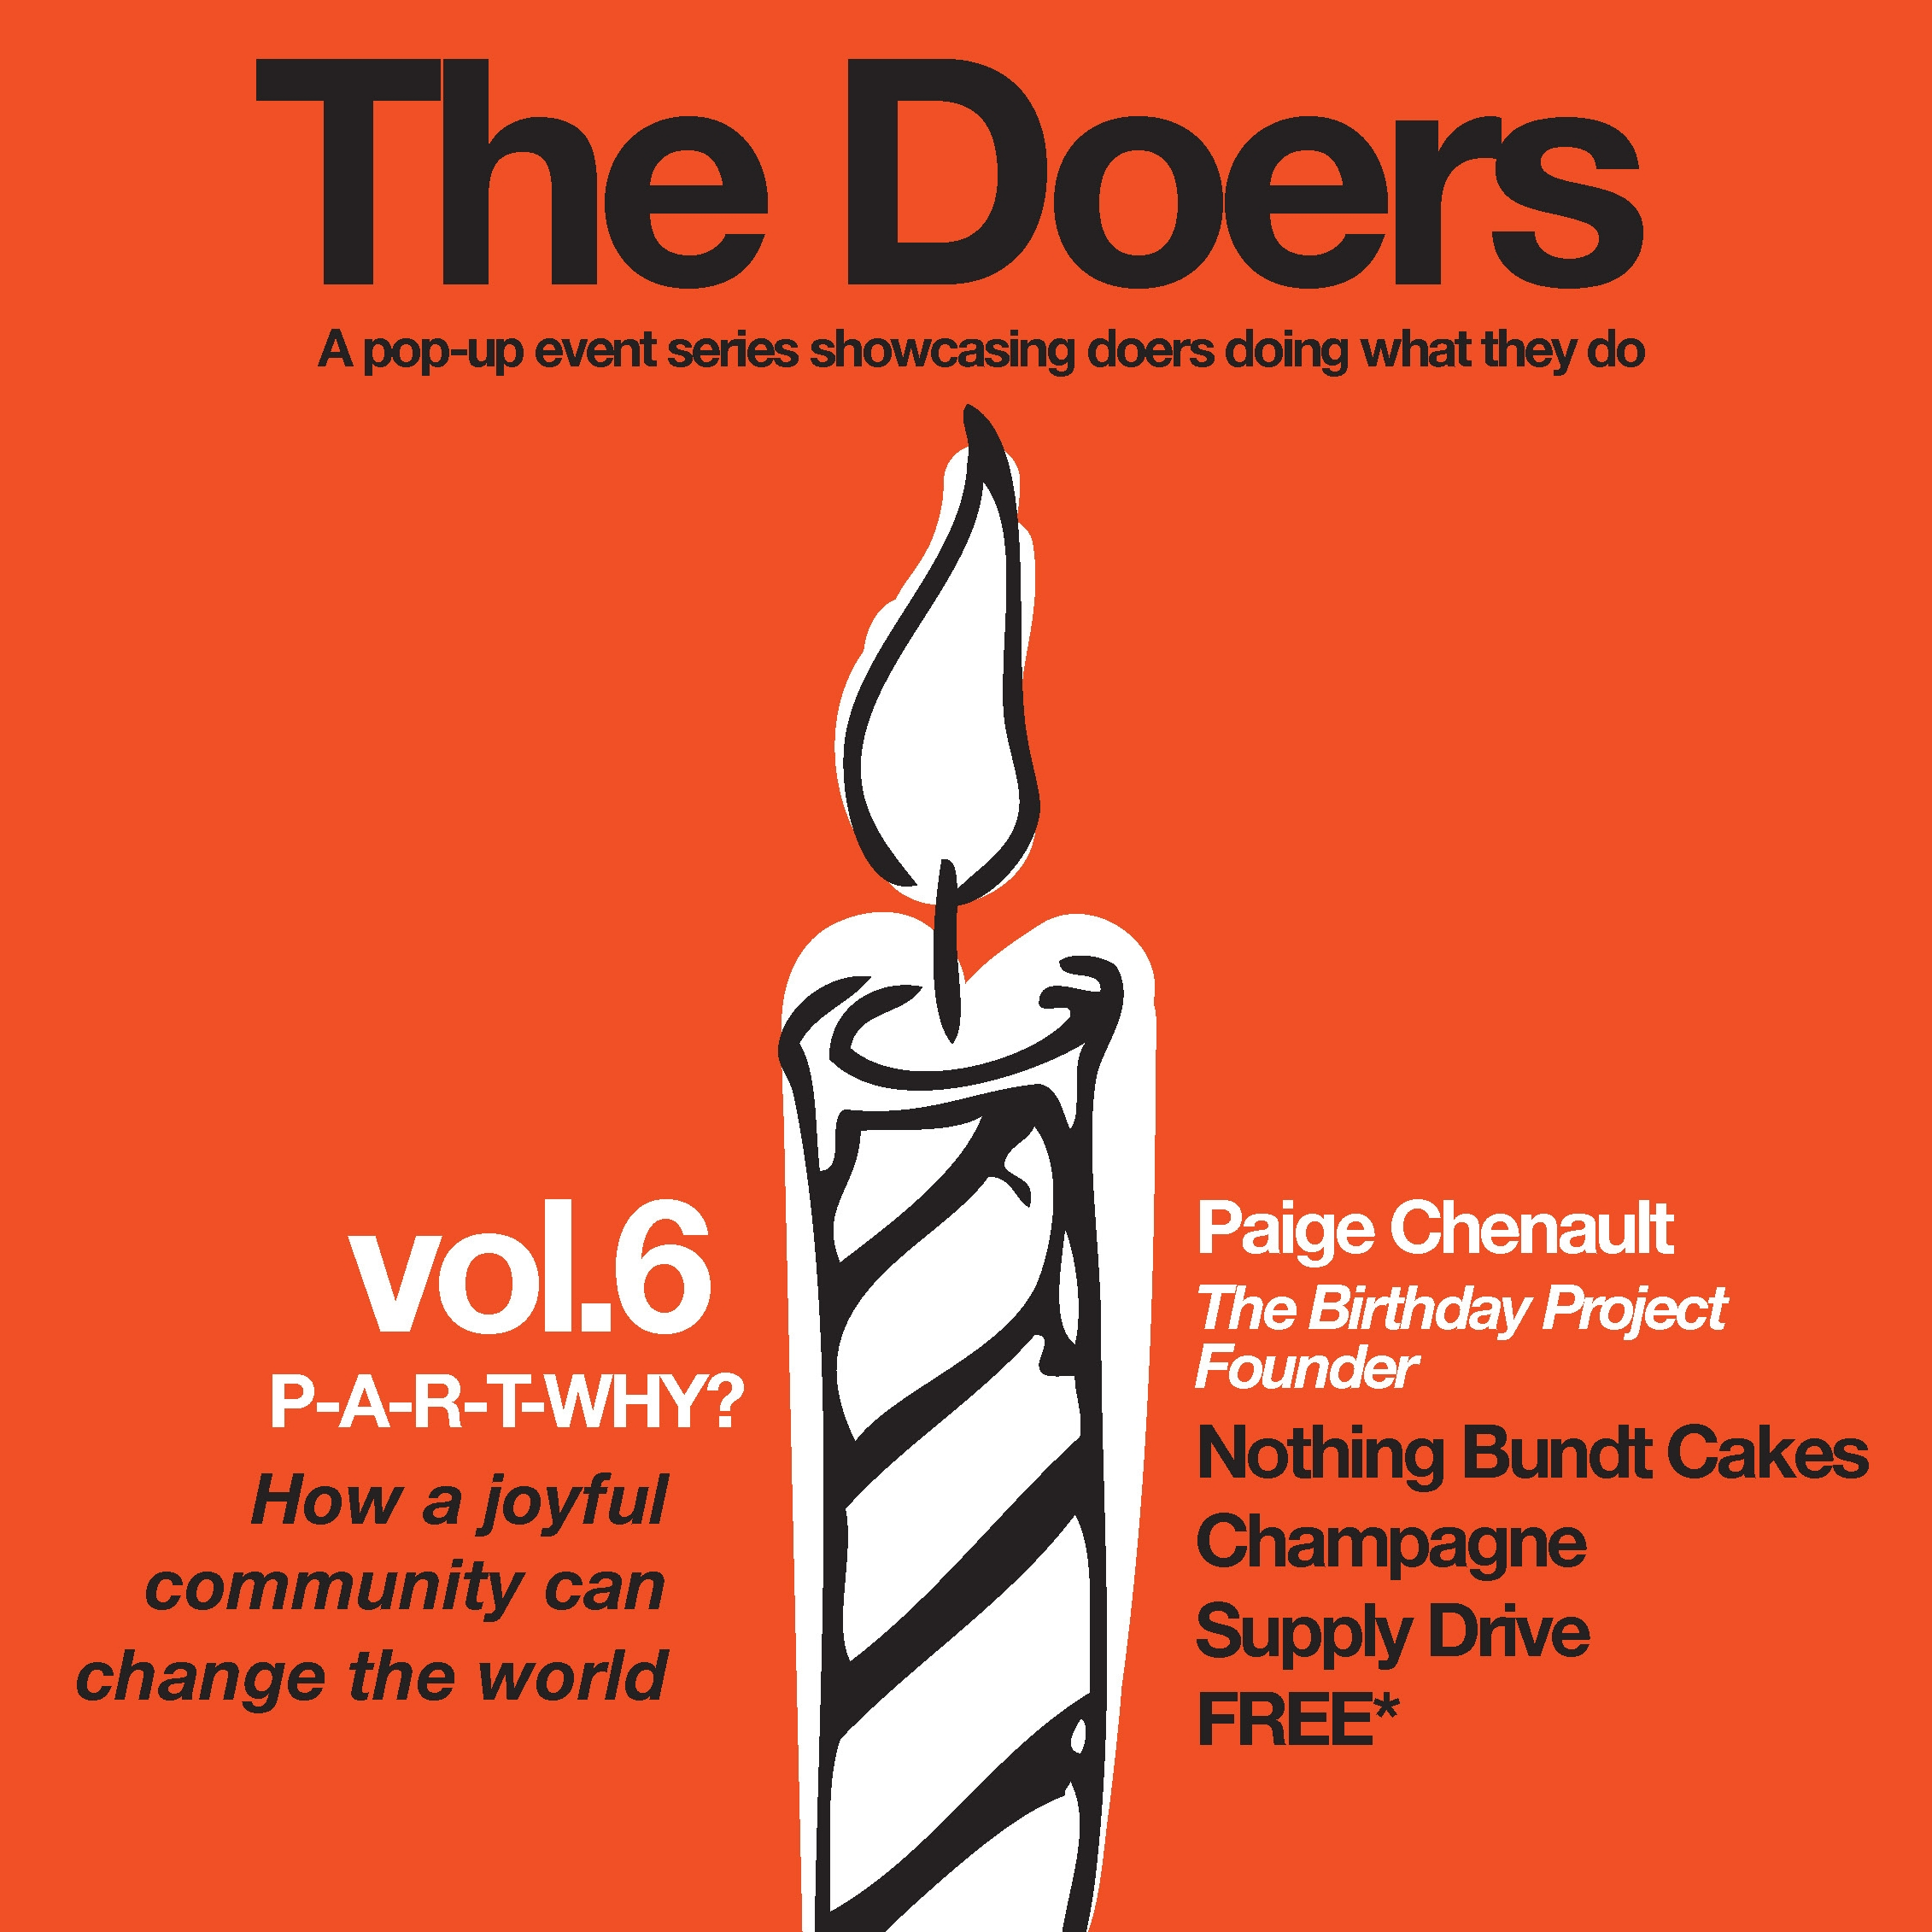 THE DOERS VOL. 5 | THE BIRTHDAY PARTY PROJECT   For vol. 5 of The Doers, we featured Paige Chenault, founder of The Birthday Party Project, a national nonprofit based here in Dallas that hosts monthly birthday parties at homeless and transitional living facilities for kids. While the event was free, in lieu of a ticket, guests brought a donation to The Birthday Party Project.